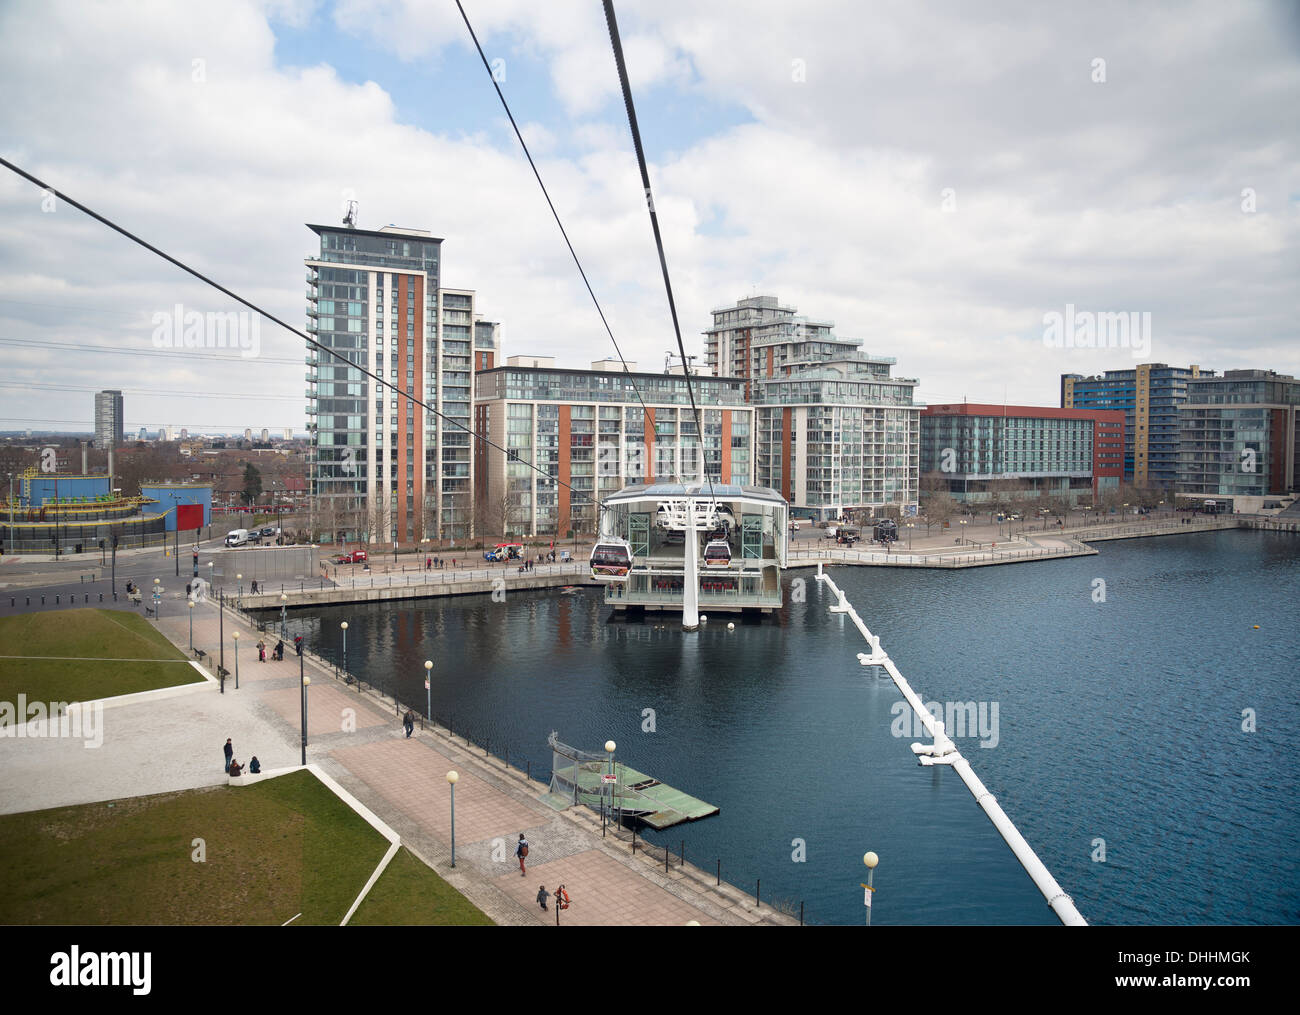 Cable Automotive Oklahoma City : View of emirates air line cable car and royal docks